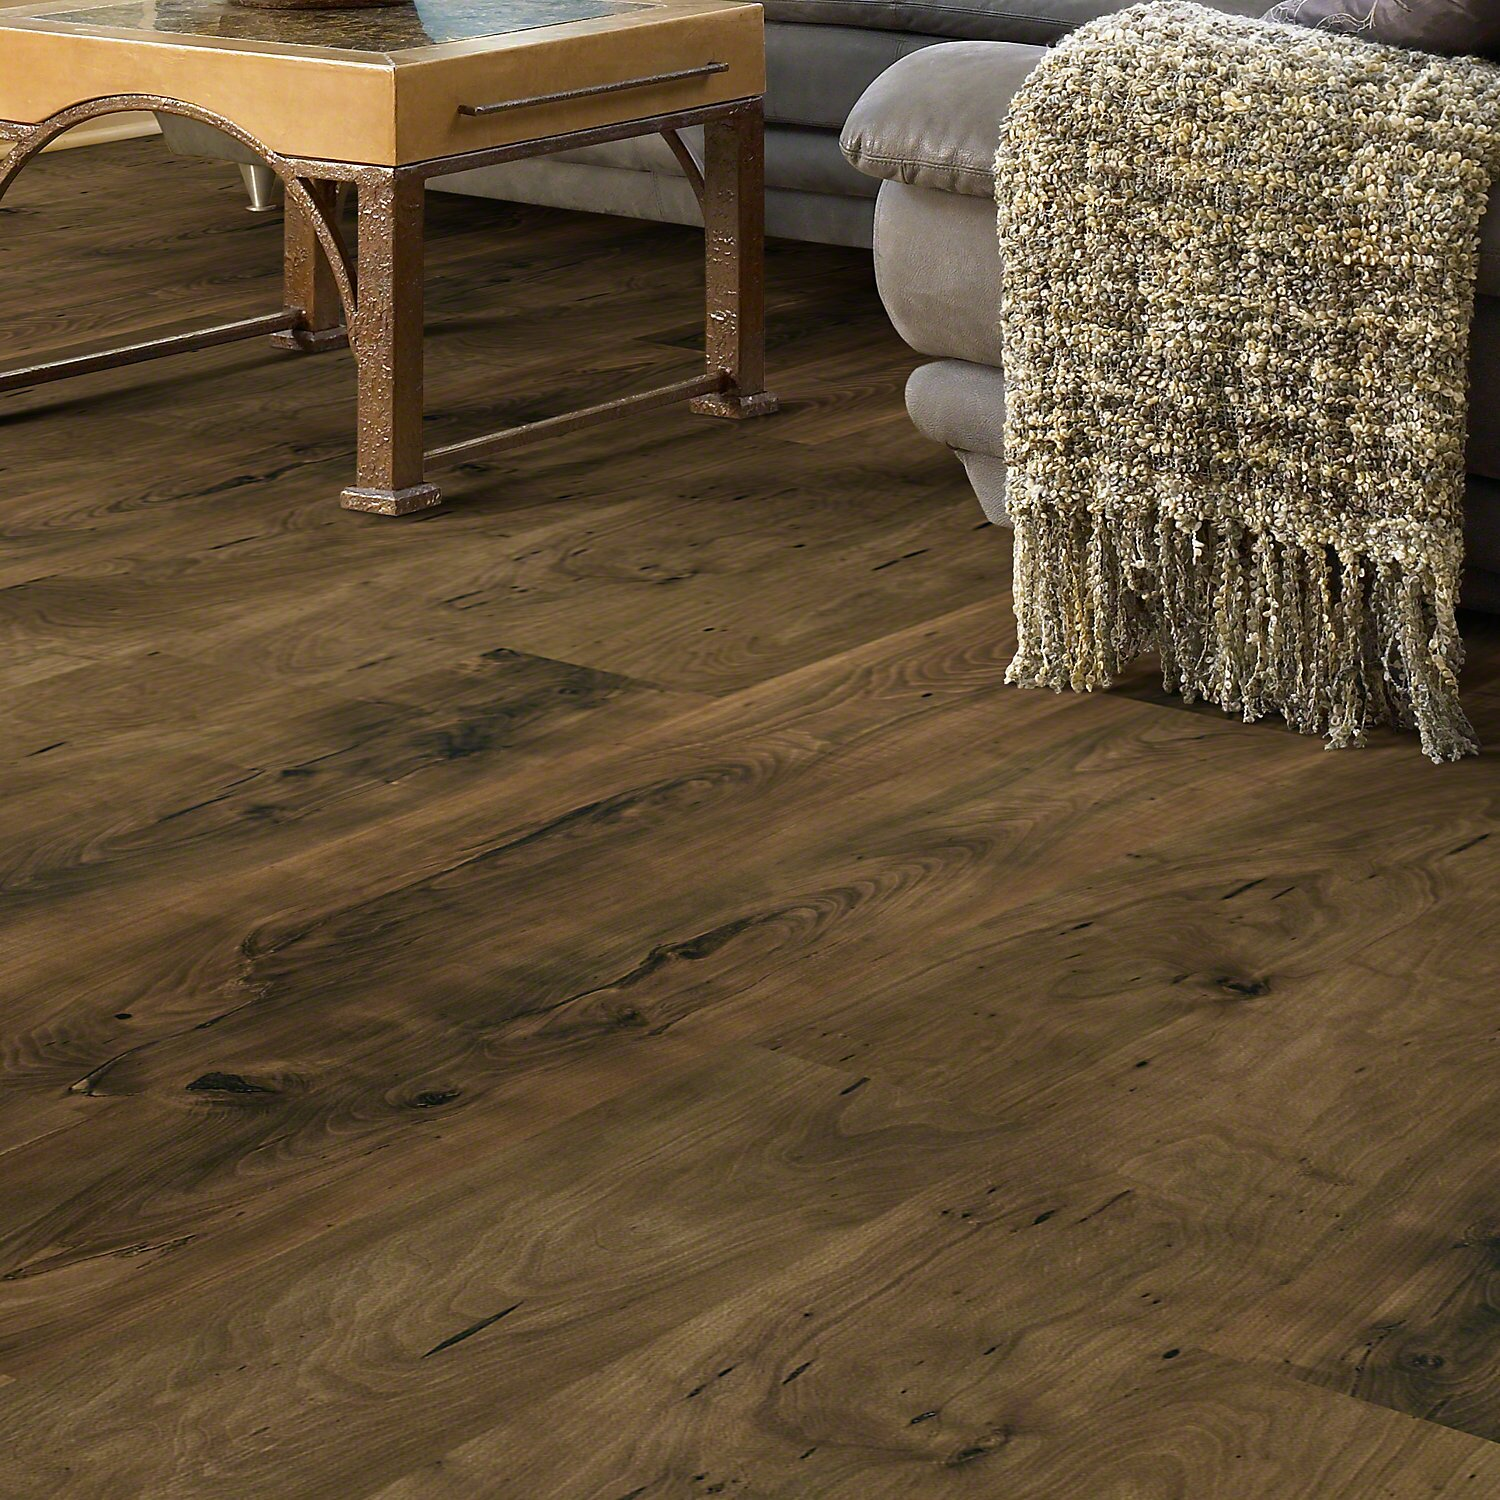 Pine Laminate Flooring home decorators collection denali pine 8 mm thick x 7 23 in wide x 50 58 in length laminate flooring 2148 sq ft case 41394 the home depot Fairfax Pine Laminate In Clifton